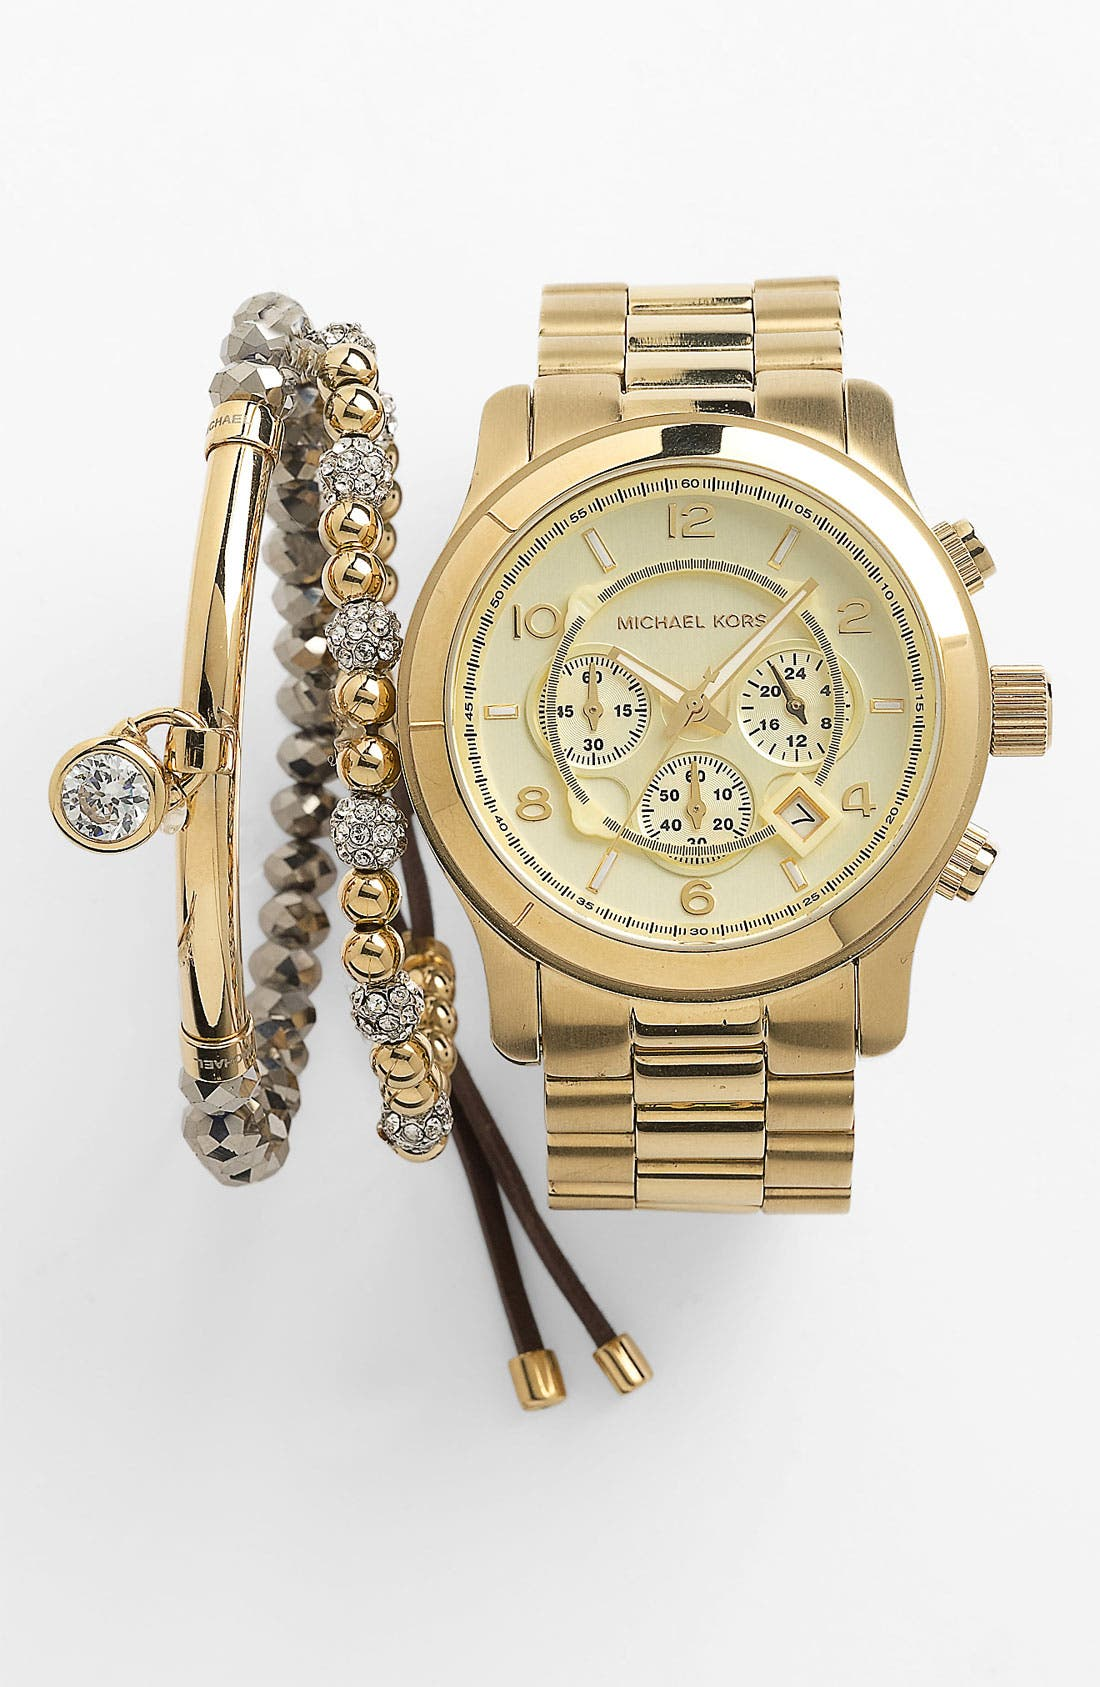 MICHAEL KORS,                             'Large Runway' Chronograph Bracelet Watch, 45mm,                             Alternate thumbnail 6, color,                             GOLD